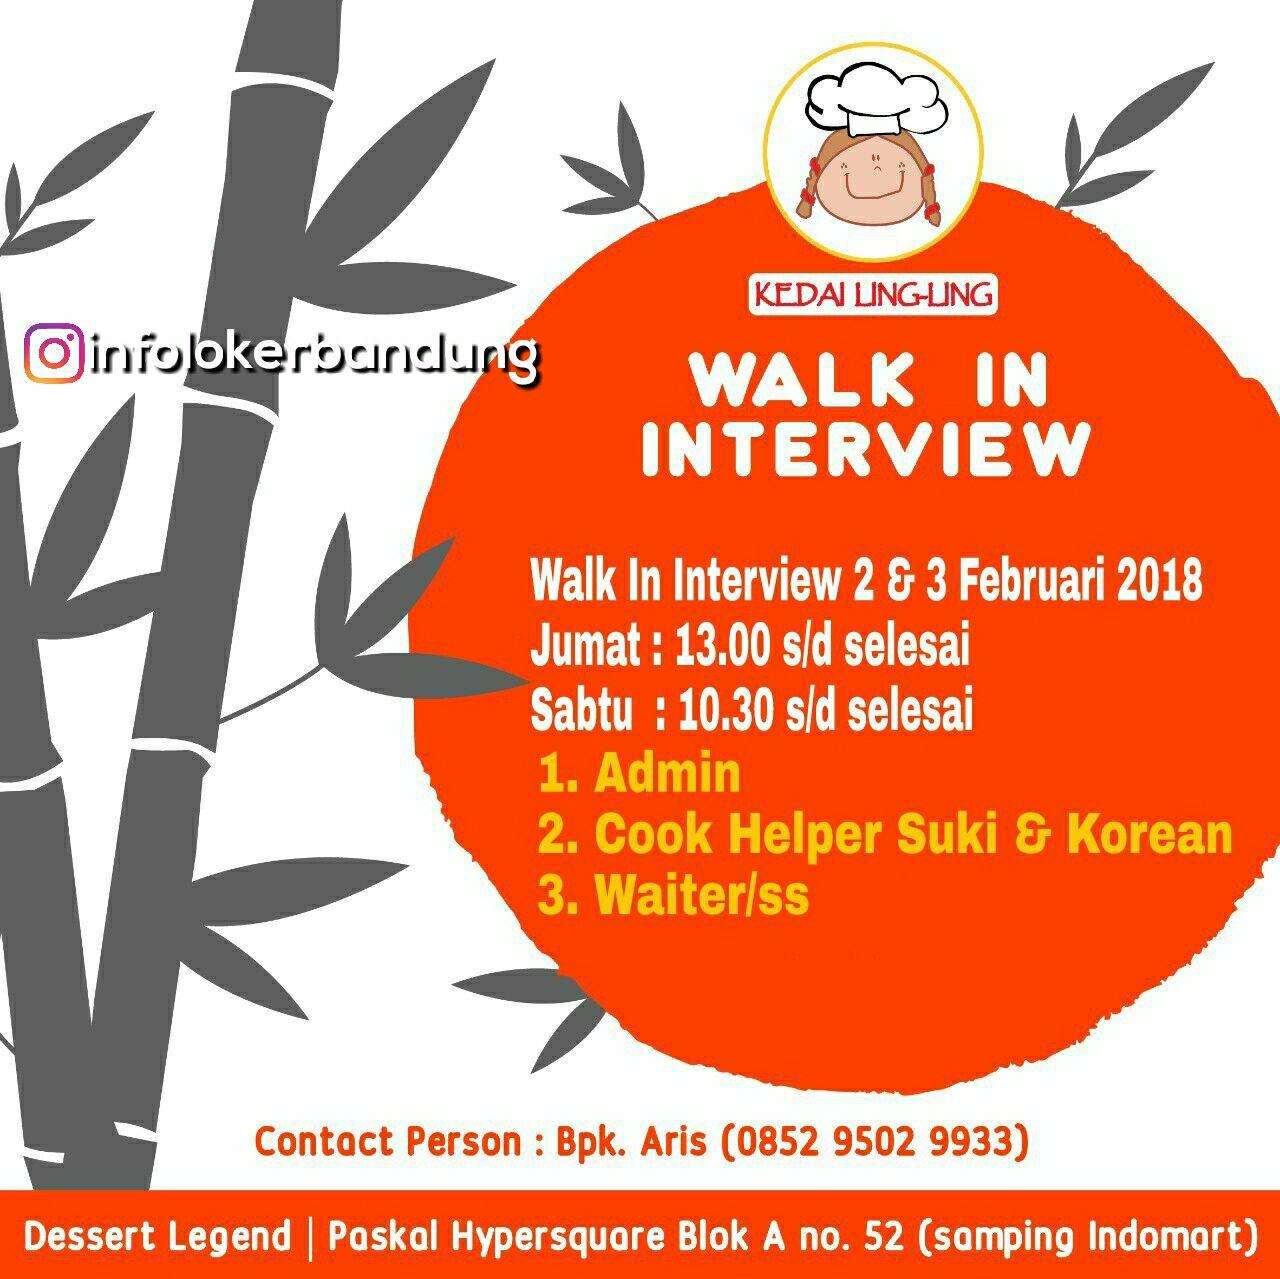 Walk In Interview Kedai Ling-ling Bandung 2 & 3 Februari 2018